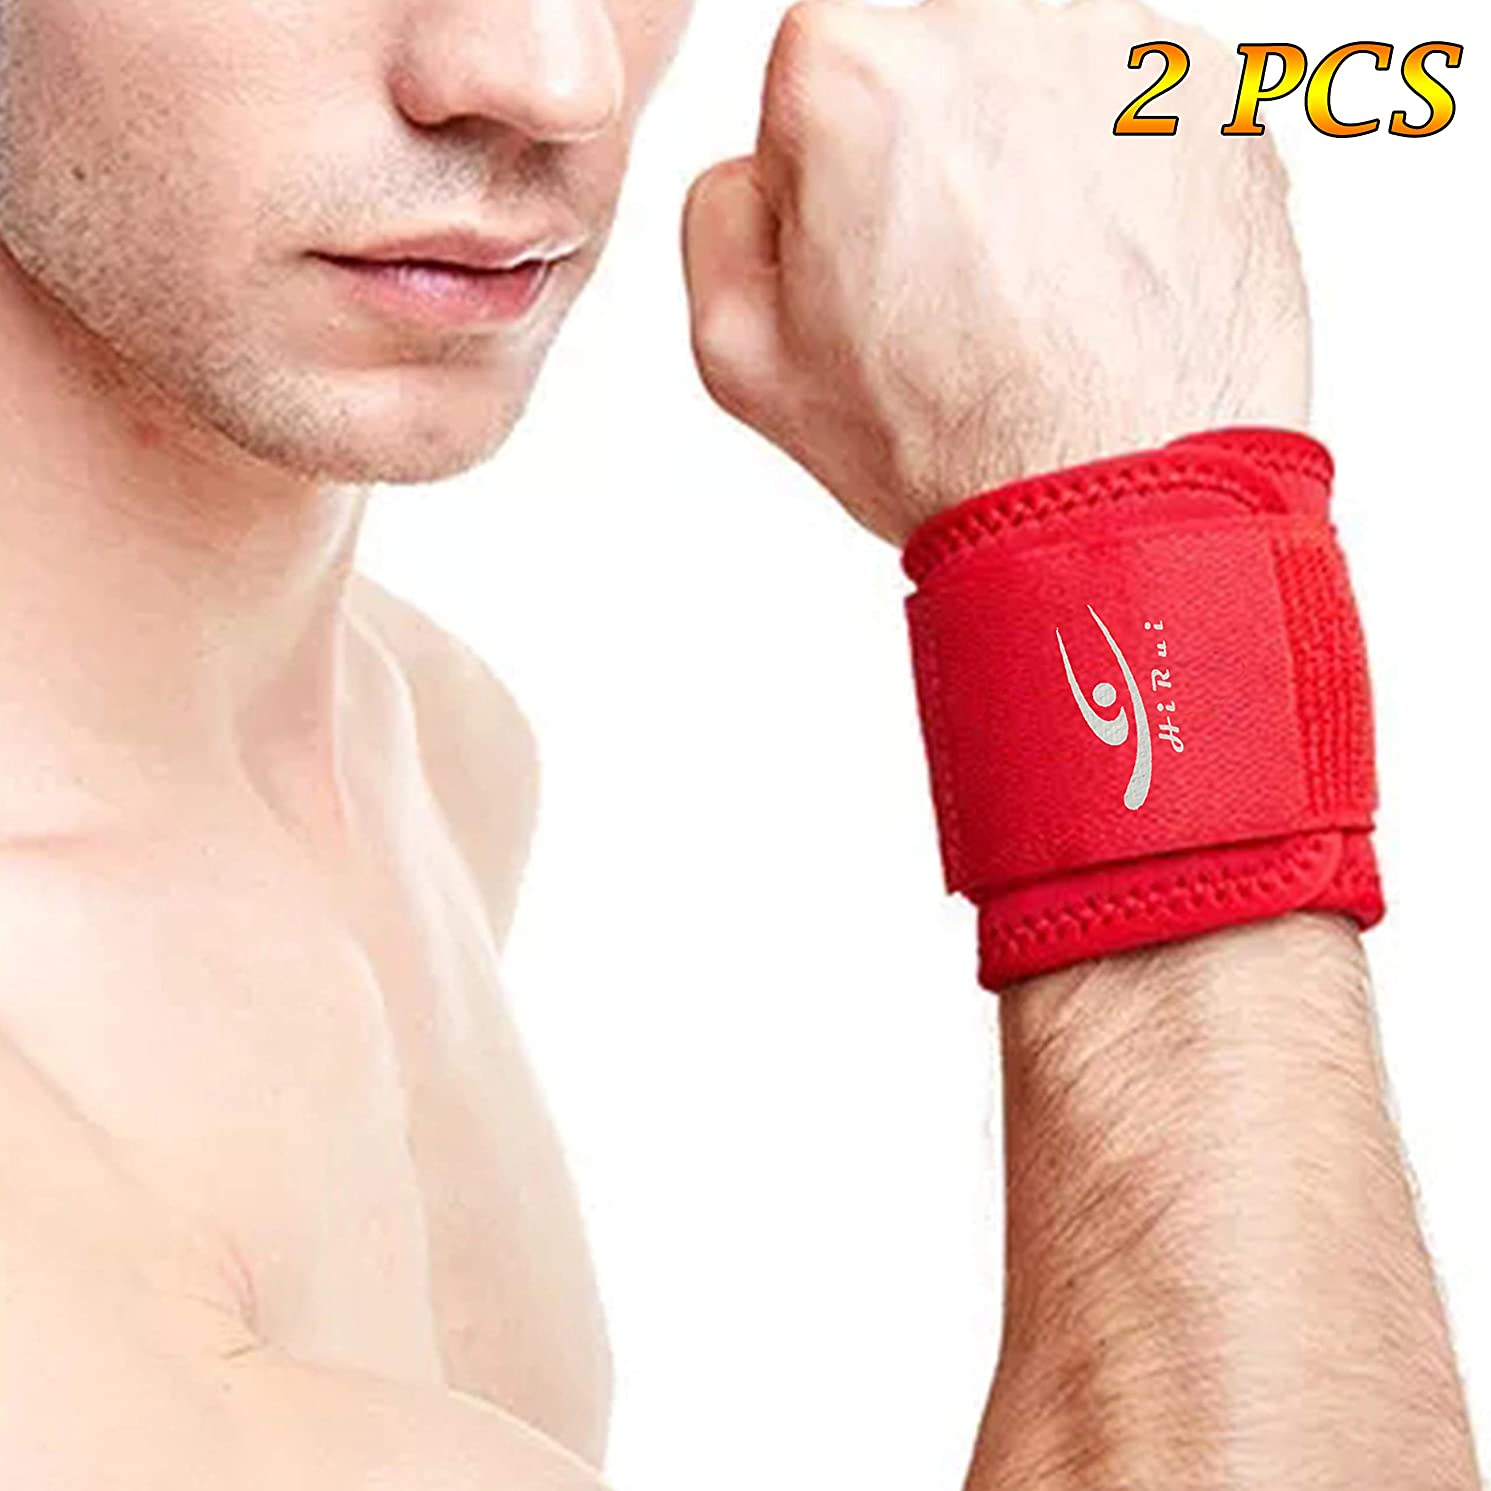 HiRui [2 Pack] Wrist Compression Strap and Wrist Brace Sport Wrist Support for Fitness, Weightlifting, Tendonitis, Carpal Tunnel Arthritis, Wrist Pain Relief-Wear Anywhere-Unisex,Adjustable